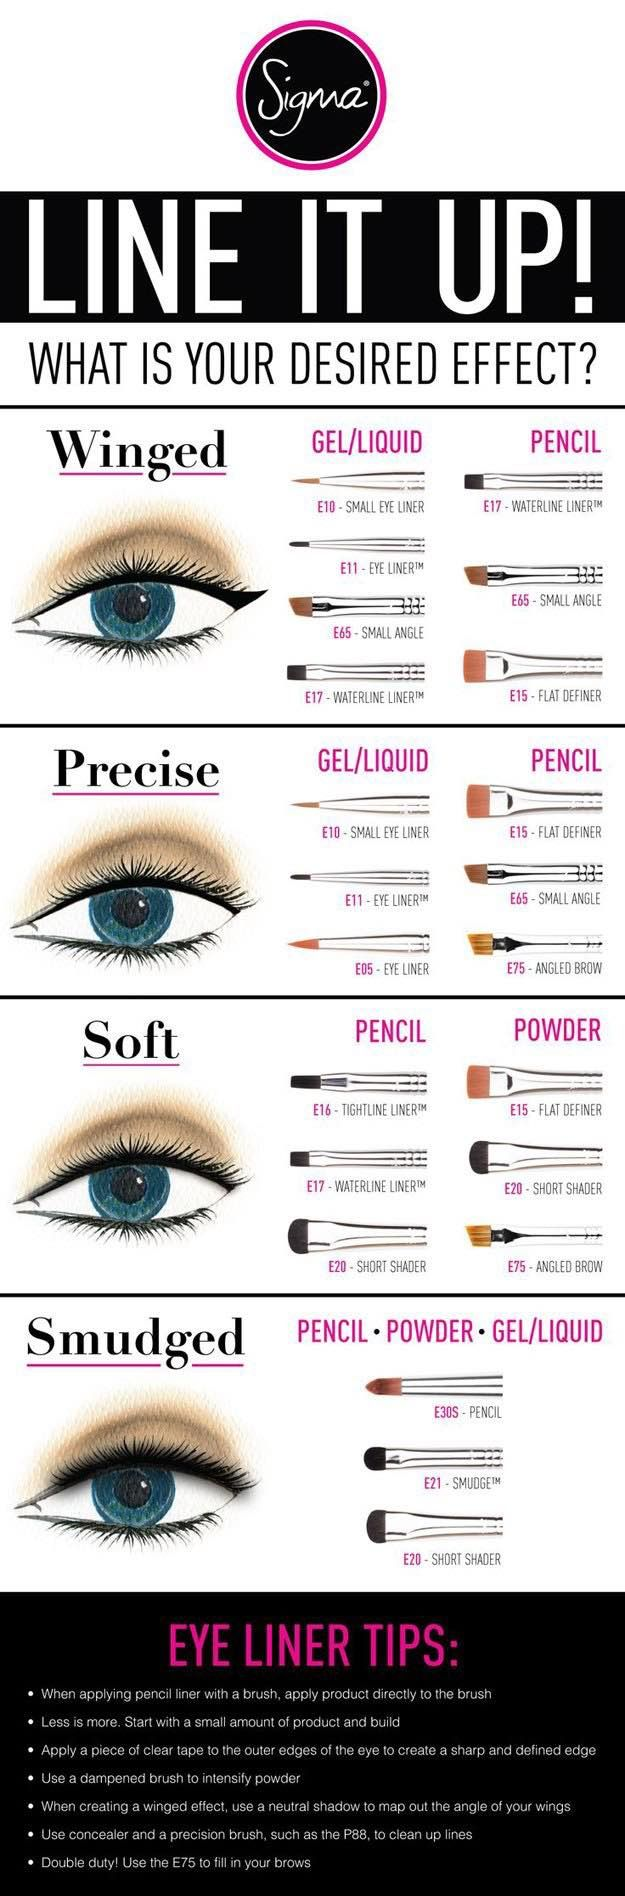 Best Makeup Eyeliner Brushes   Best Makeup Tutorials And Beauty Tips From The We...